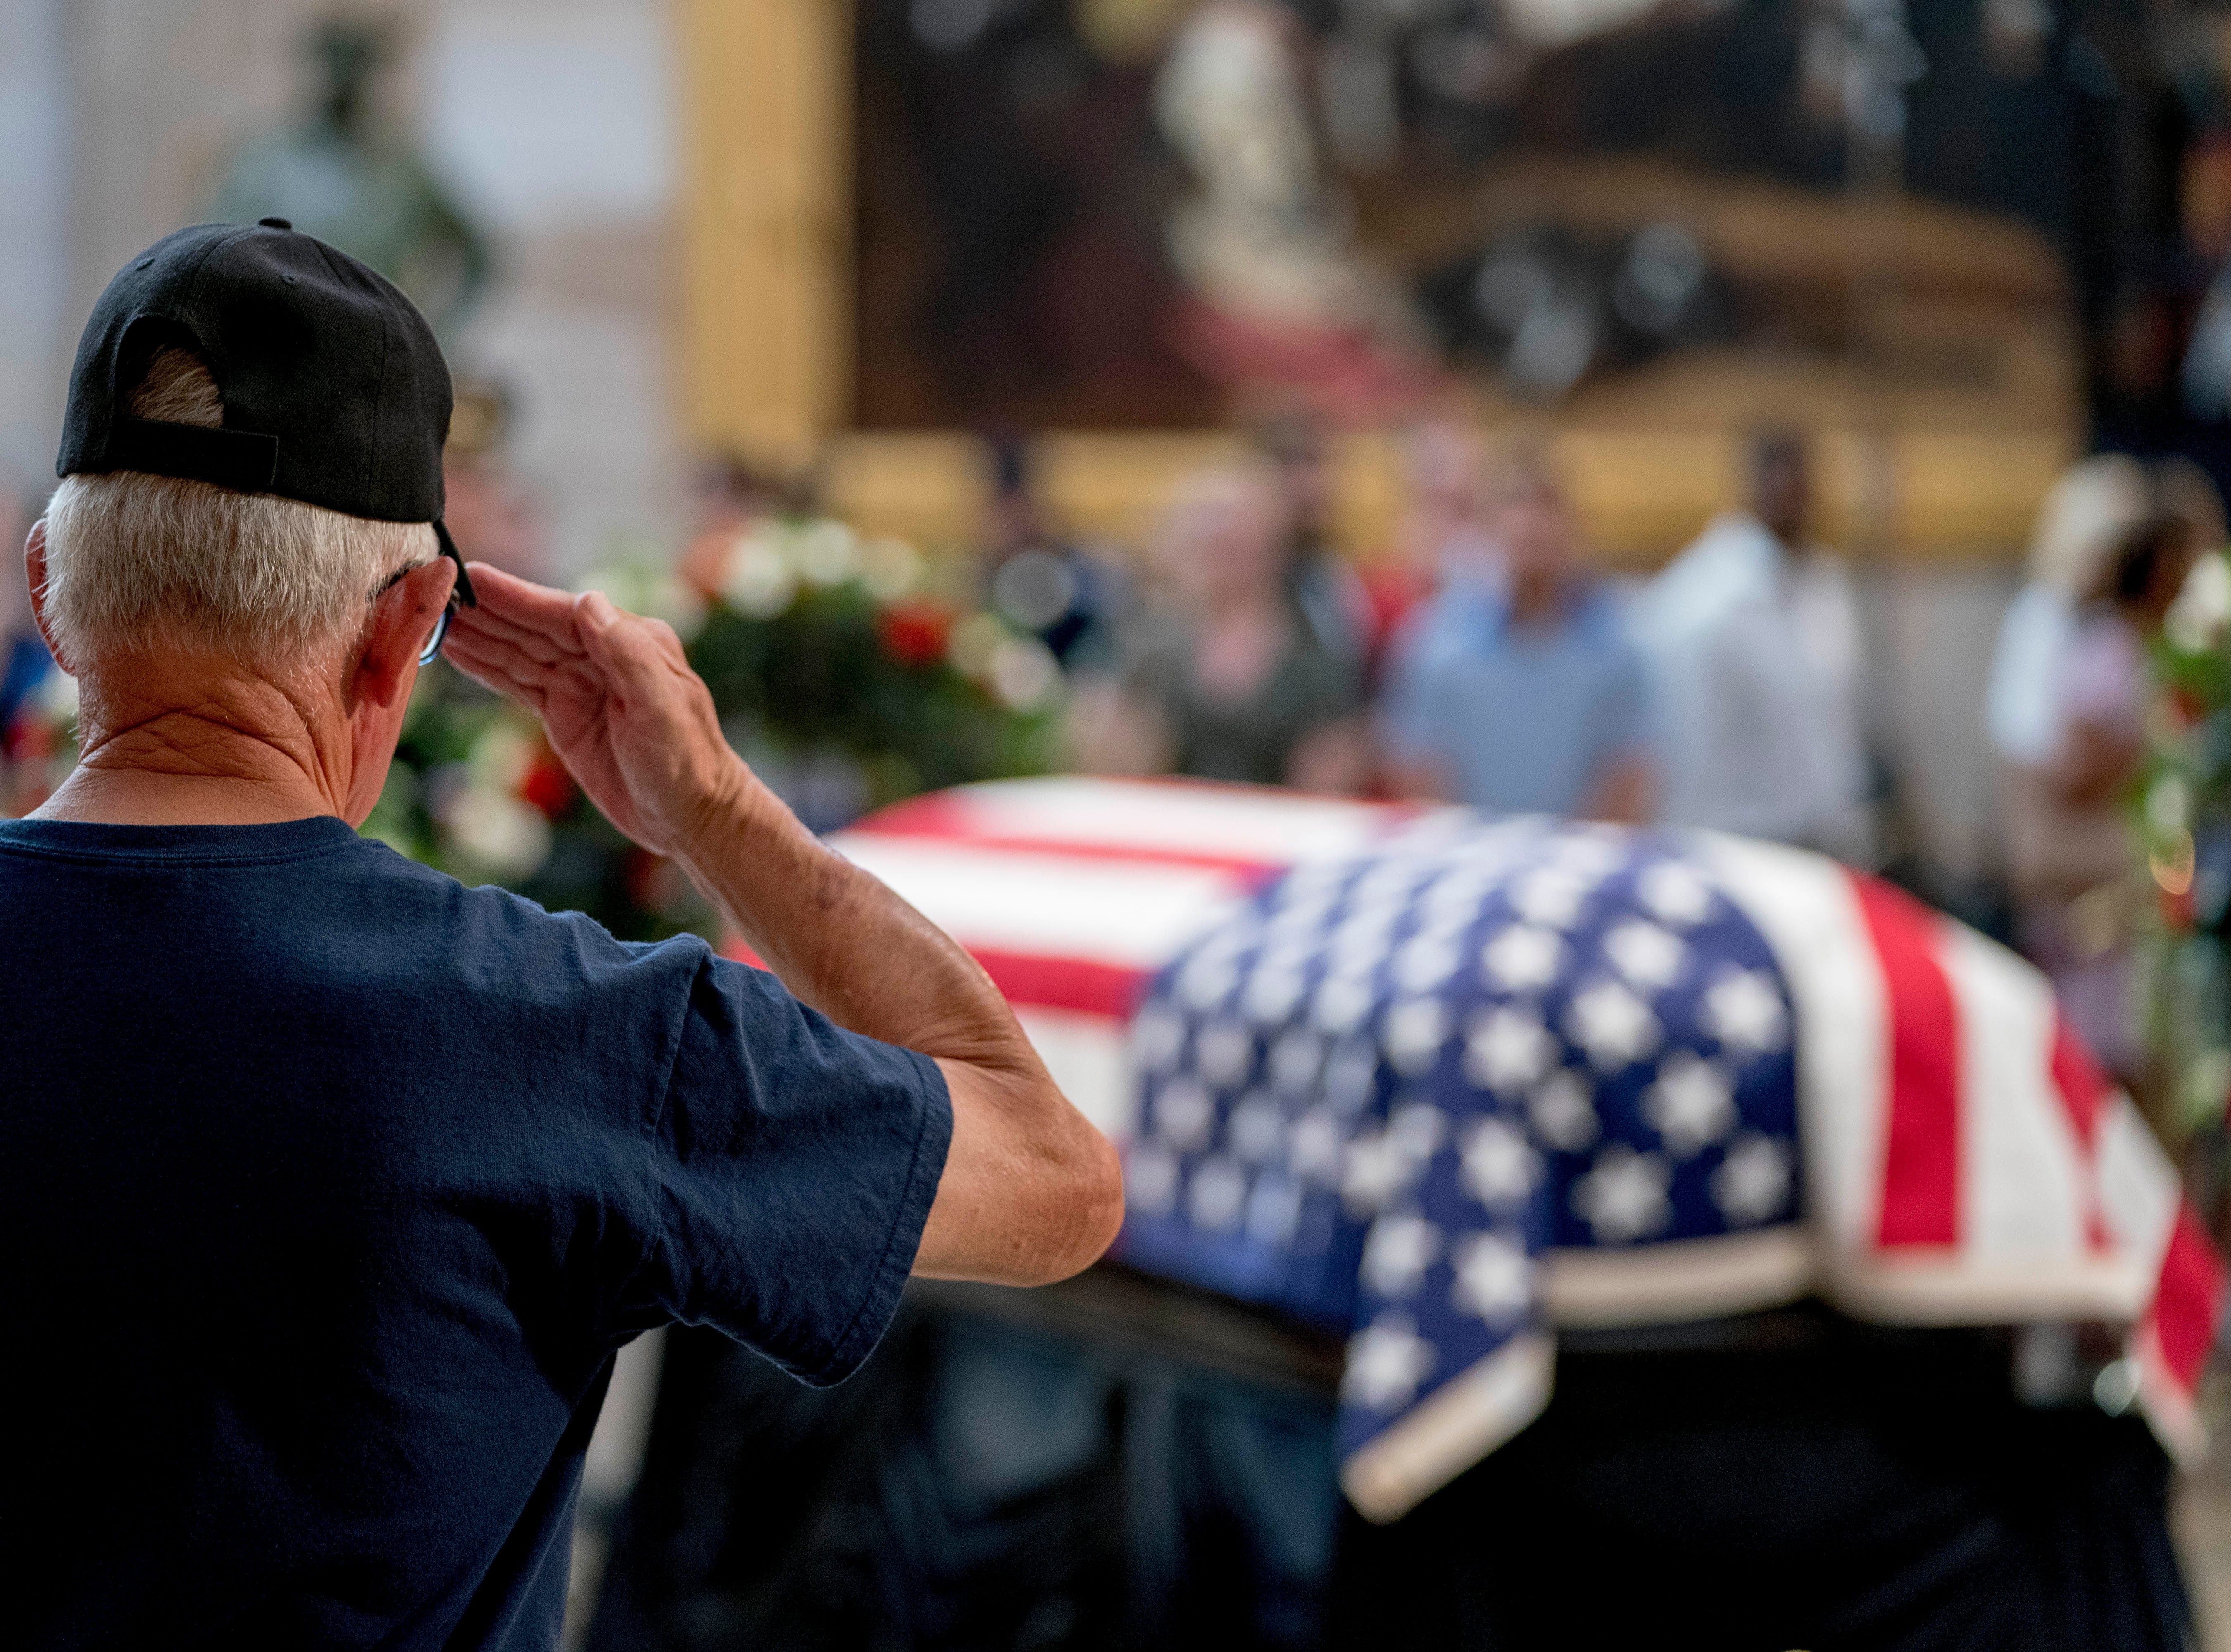 A Vietnam War veteran salutes the casket of Sen. John McCain, R-Ariz., in the Rotunda of the U.S. Capitol, Friday, Aug. 31, 2018, in Washington. (AP Photo/Andrew Harnik)